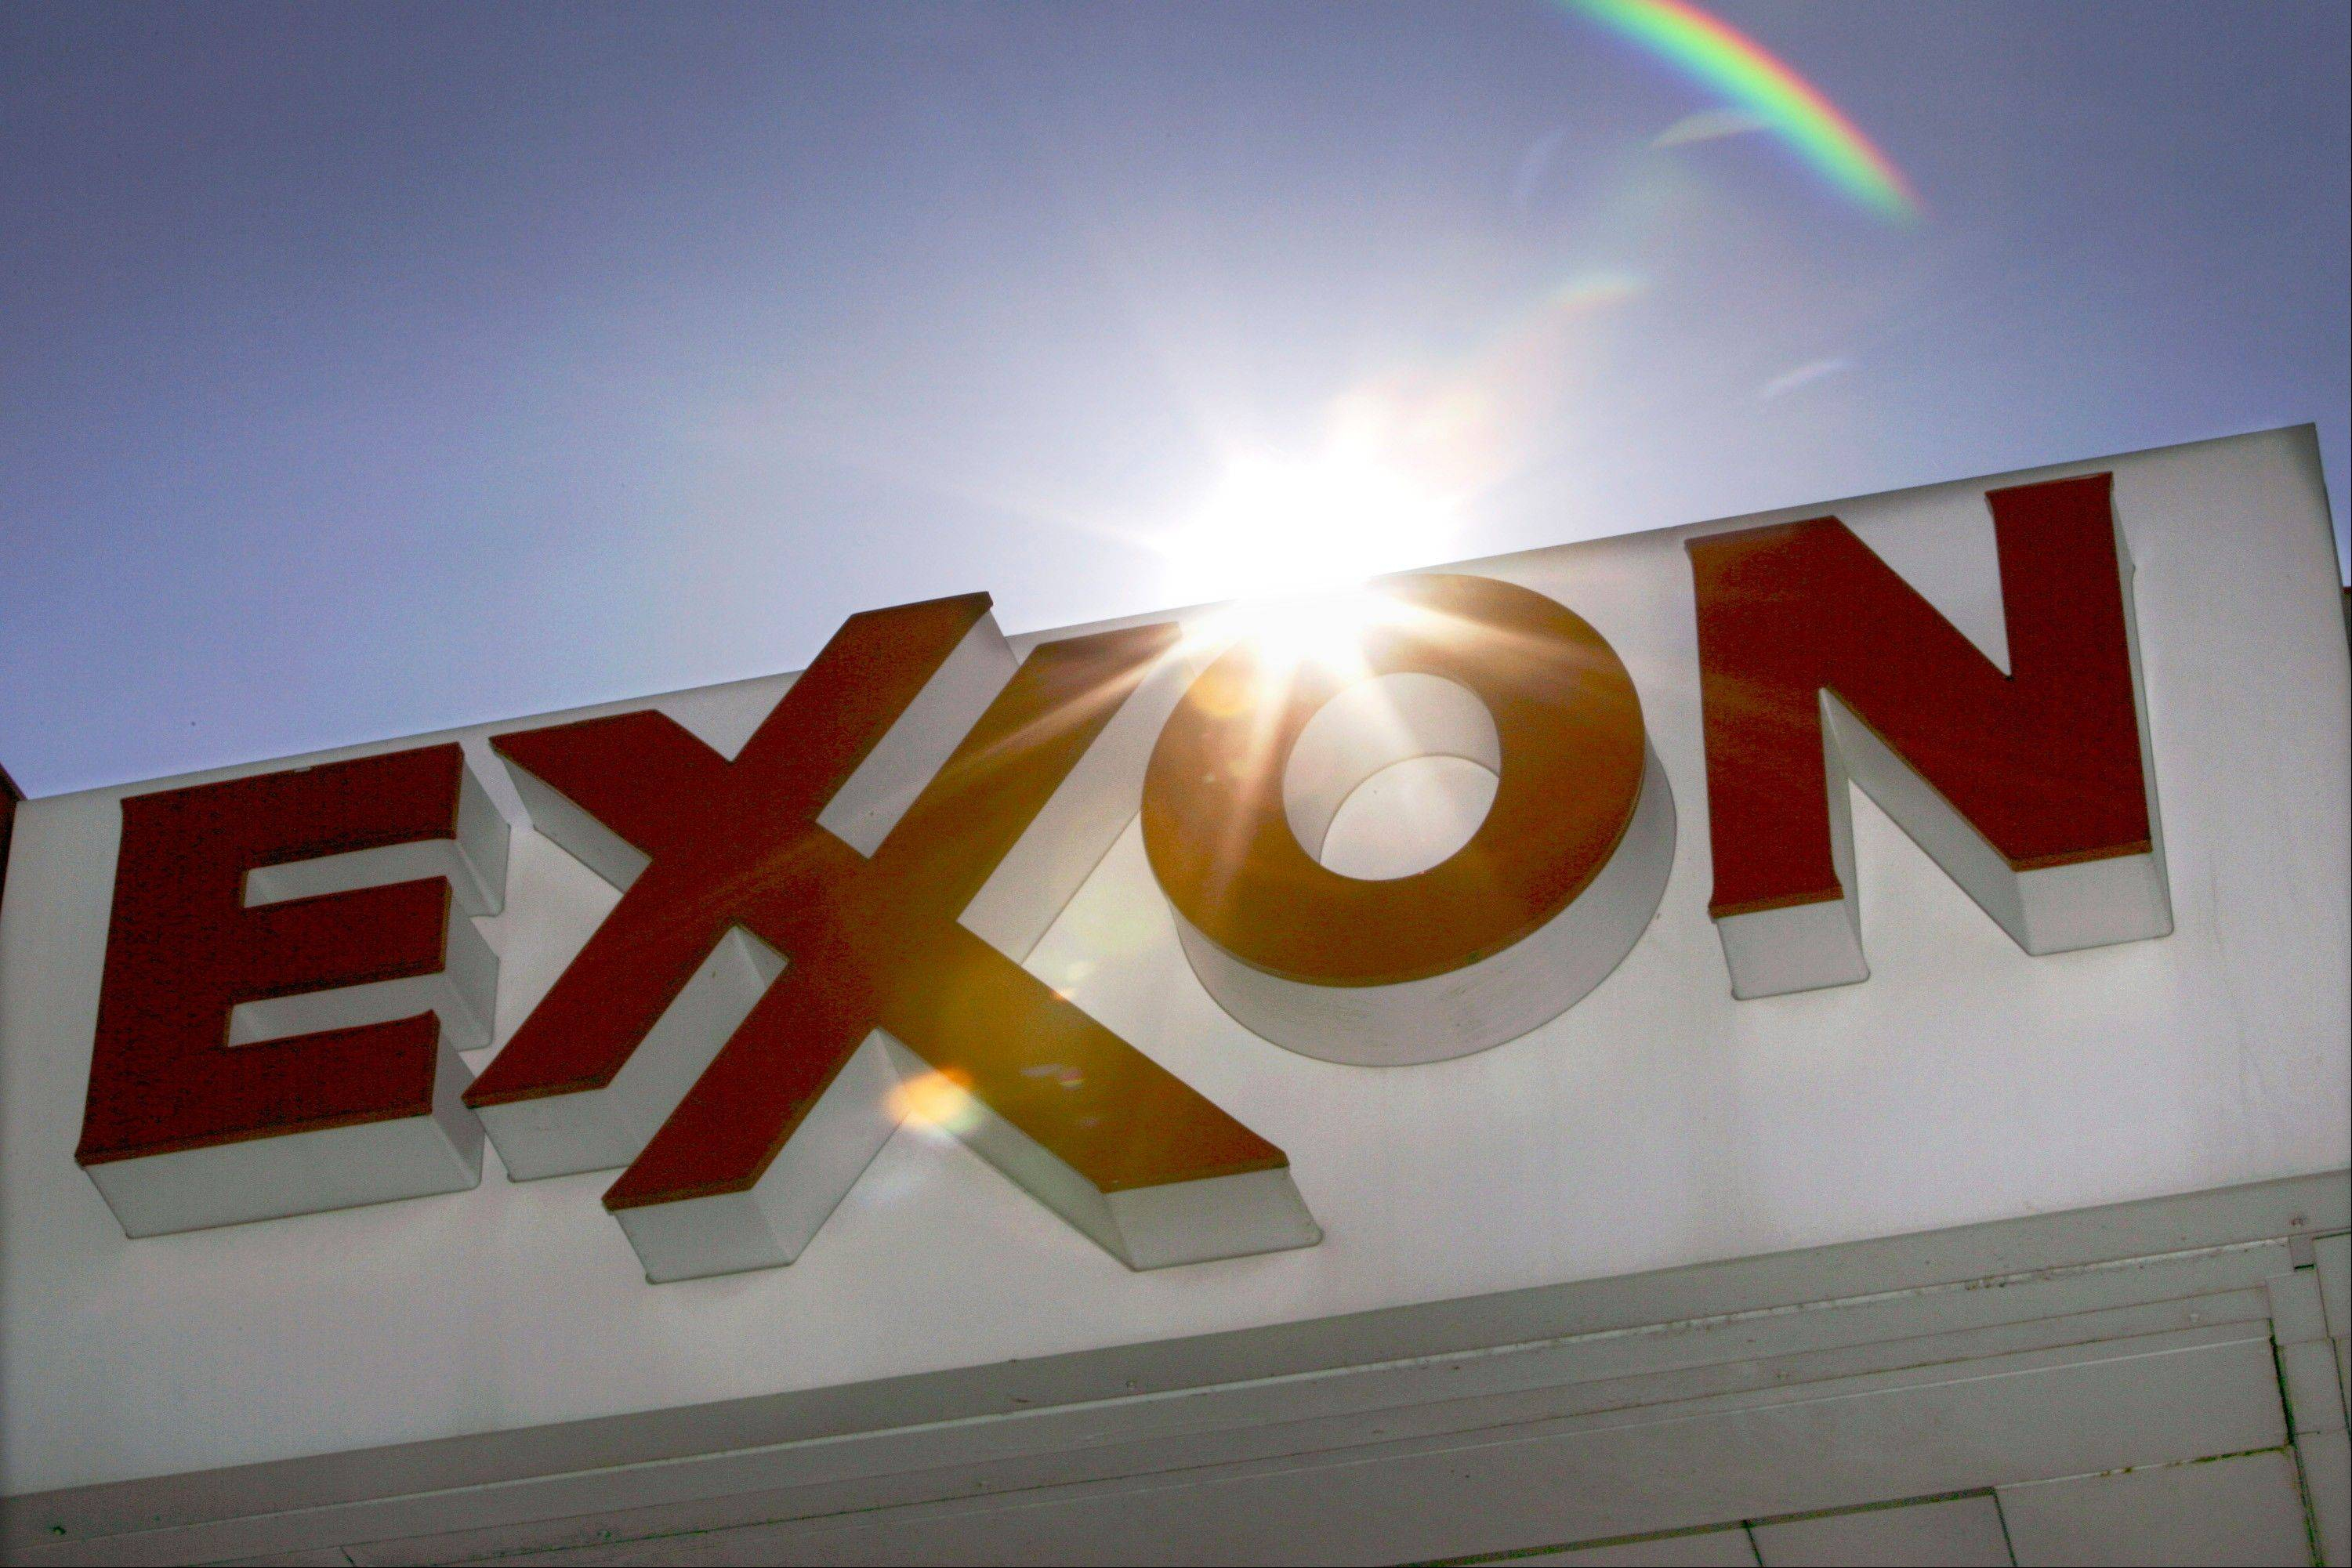 Exxon Mobil expects production to decline by about 1 percent this year due to weaker output of natural gas.